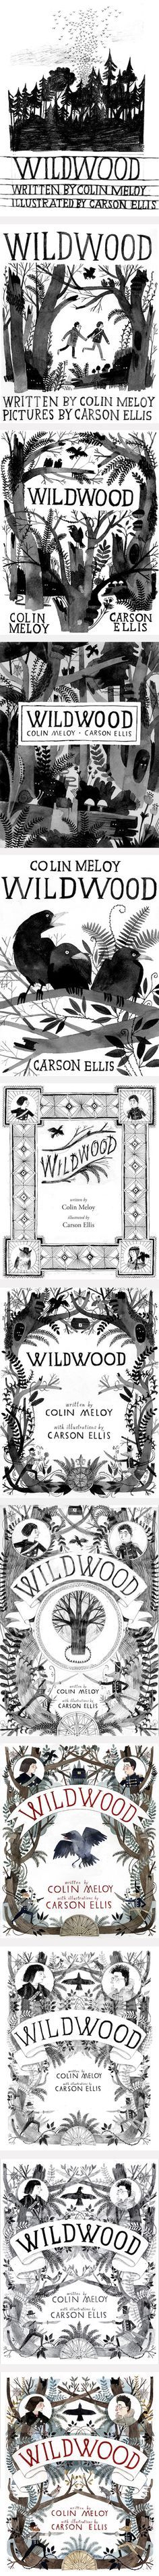 The agony and the ecstasy - the story about the cover design of Wildwood by Colin Meloy and Carson Ellis//